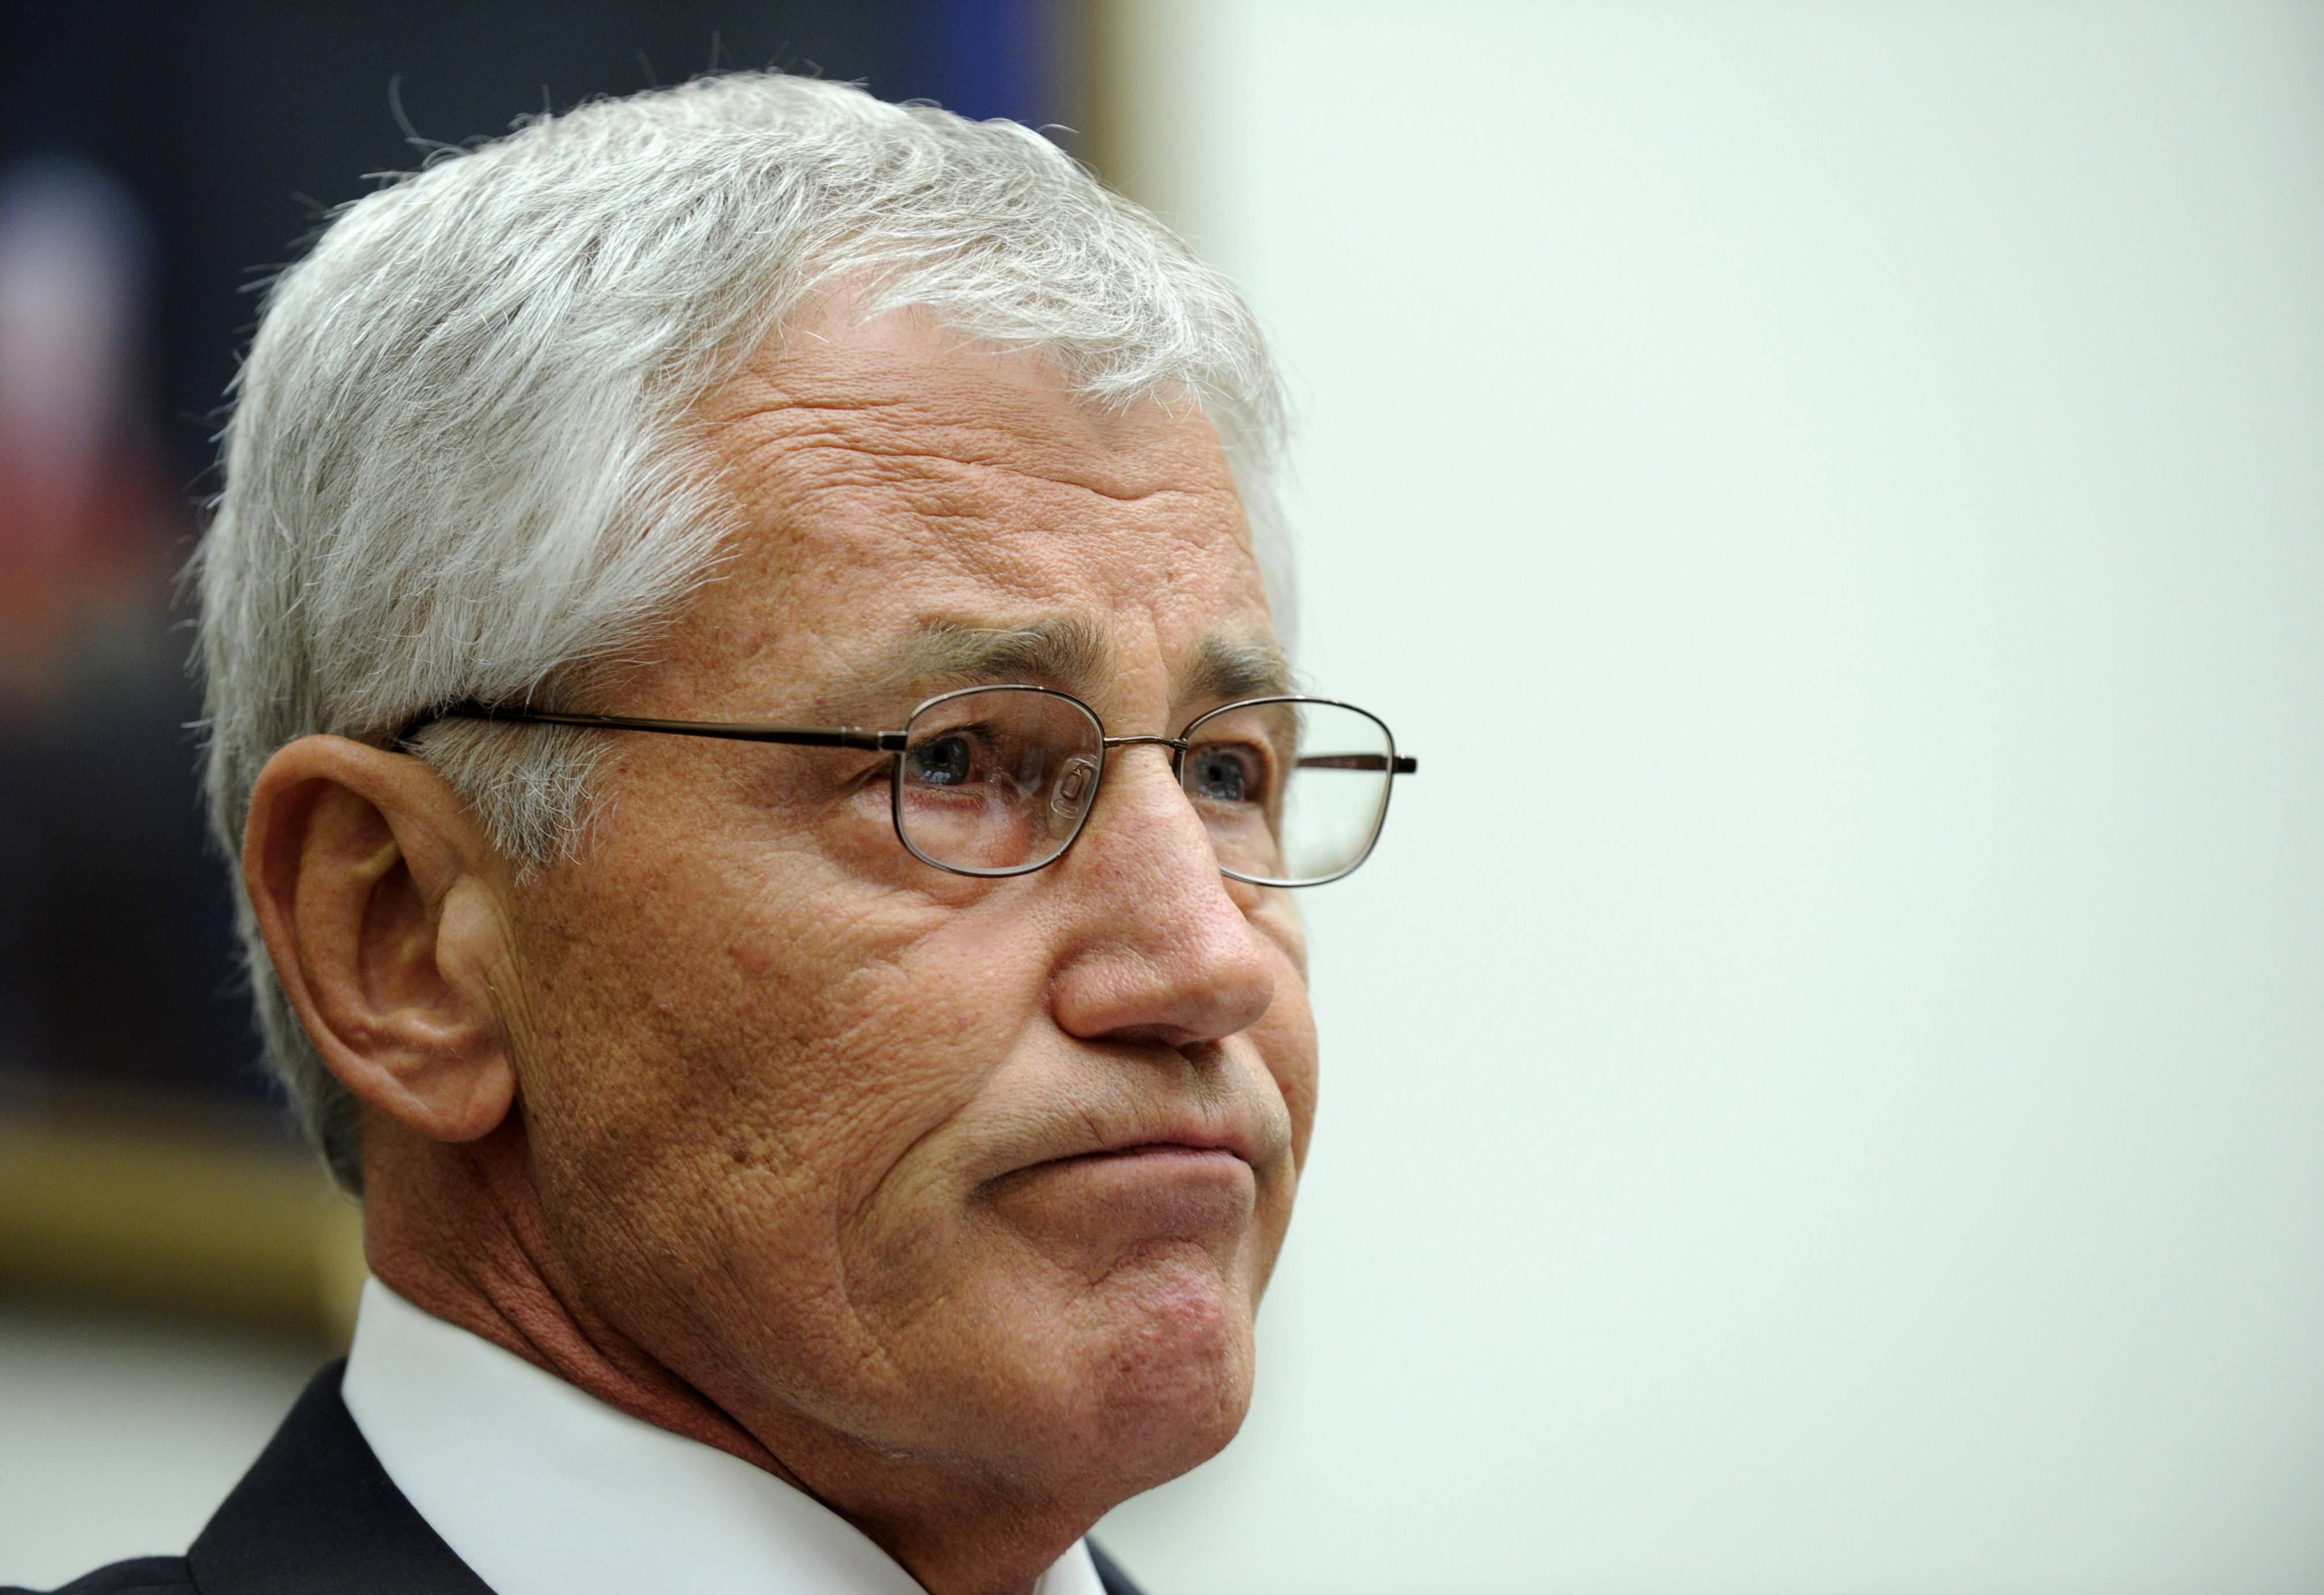 Defense Secretary Chuck Hagel listens while testifying on Capitol Hill in Washington, Wednesday, June 11, 2014, before the House Armed Services Committee. Hagel faced angry lawmakers as the first Obama administration official to testify publicly about the controversial prisoner swap with the Taliban.